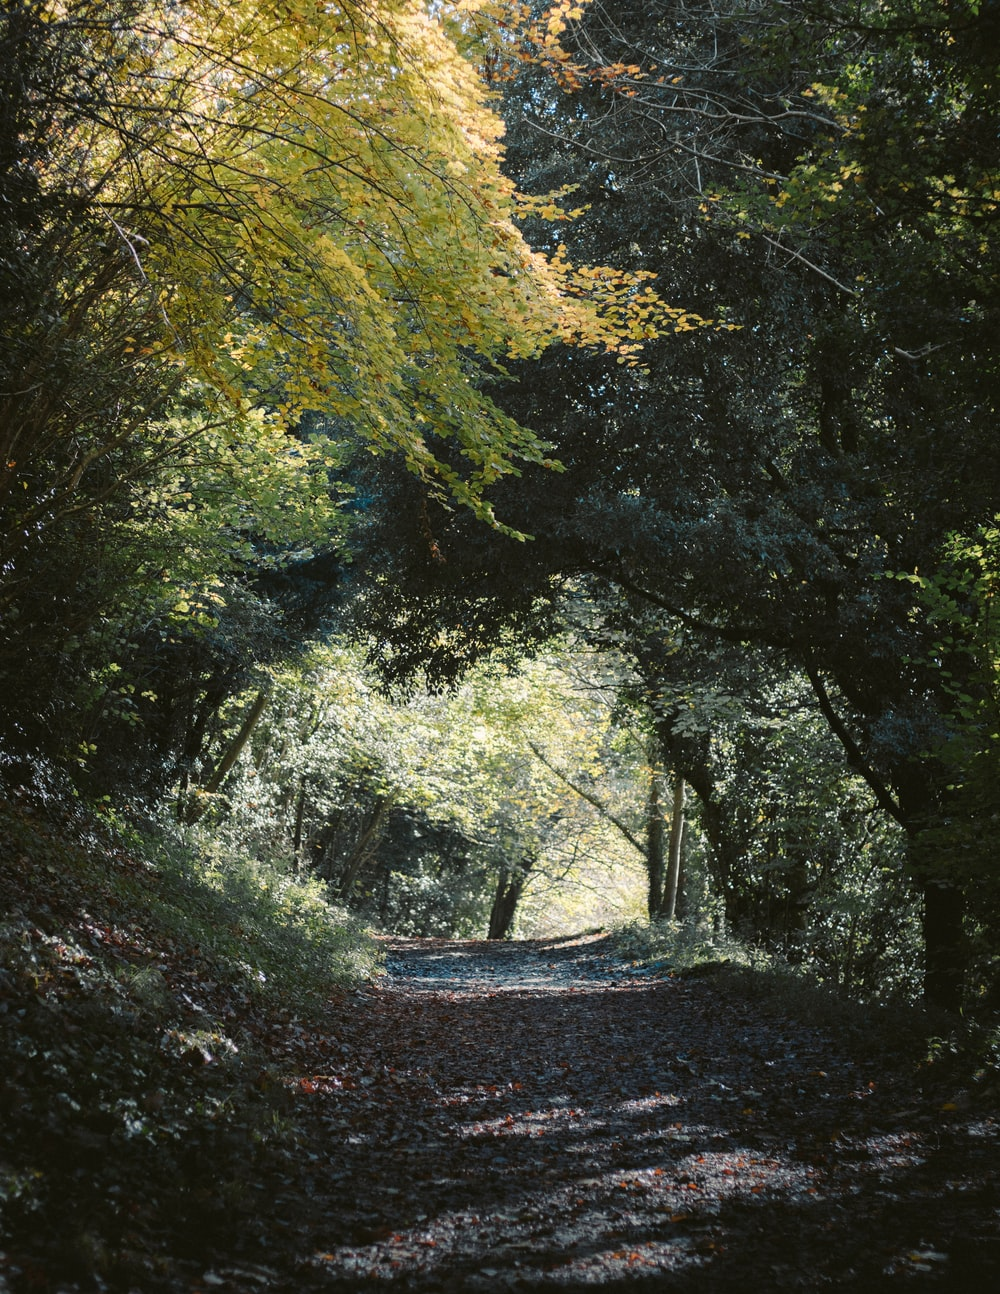 view of road through forest